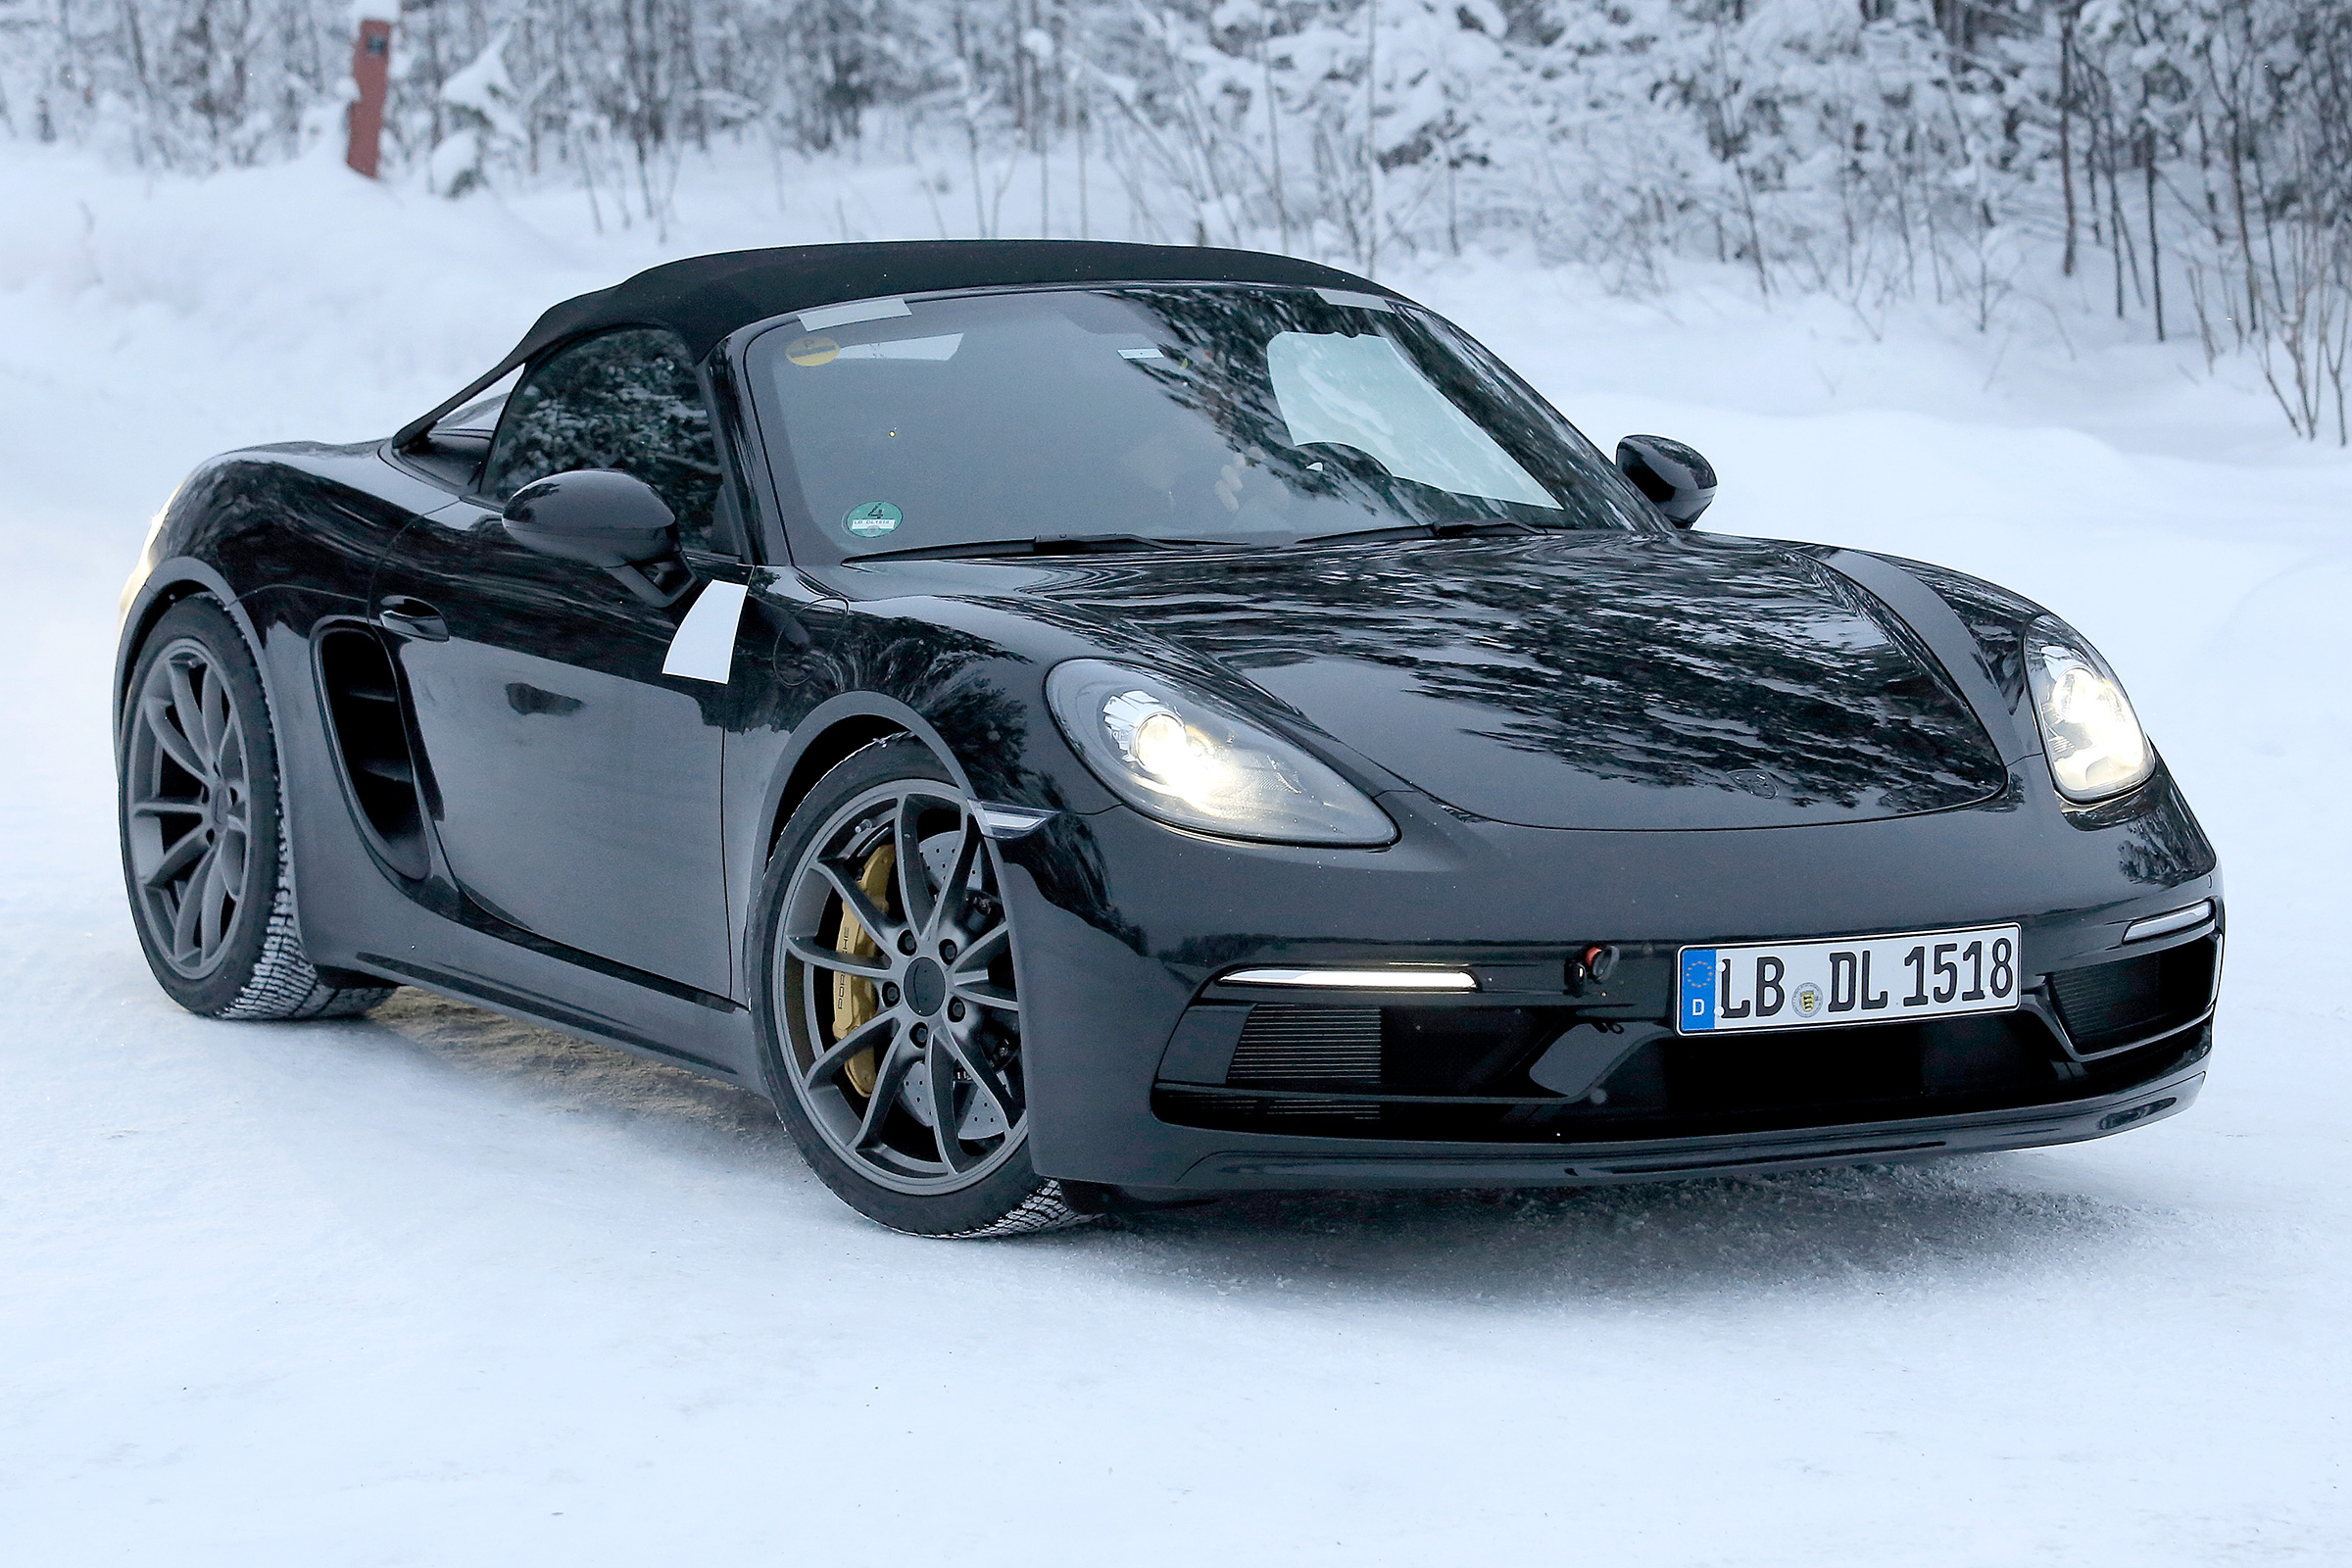 Porsche Boxster 718 Spyder spied winter testing ahead of